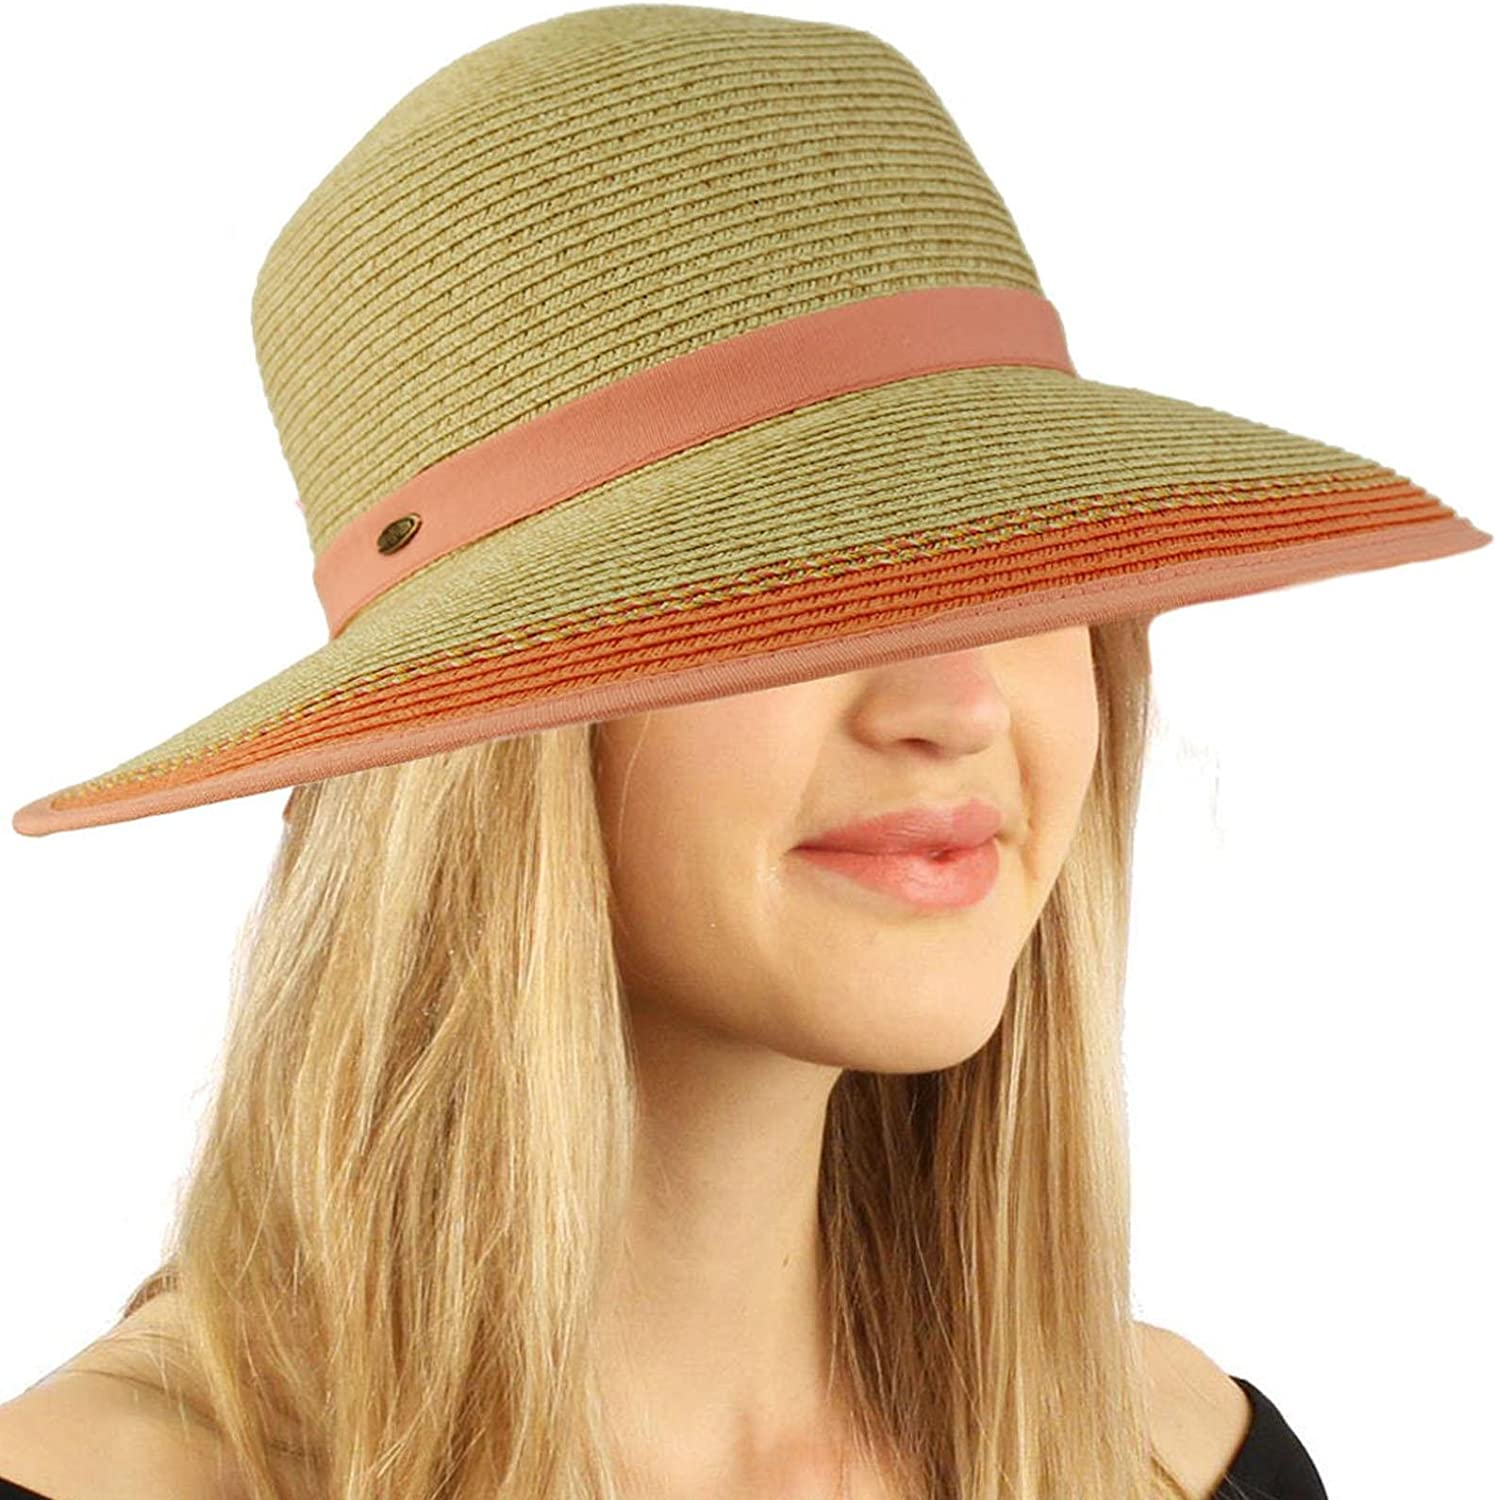 C.C Backless Brim Floppy Visor 3-3//4 Wide Summer Beach Pool Sun Hat Cap